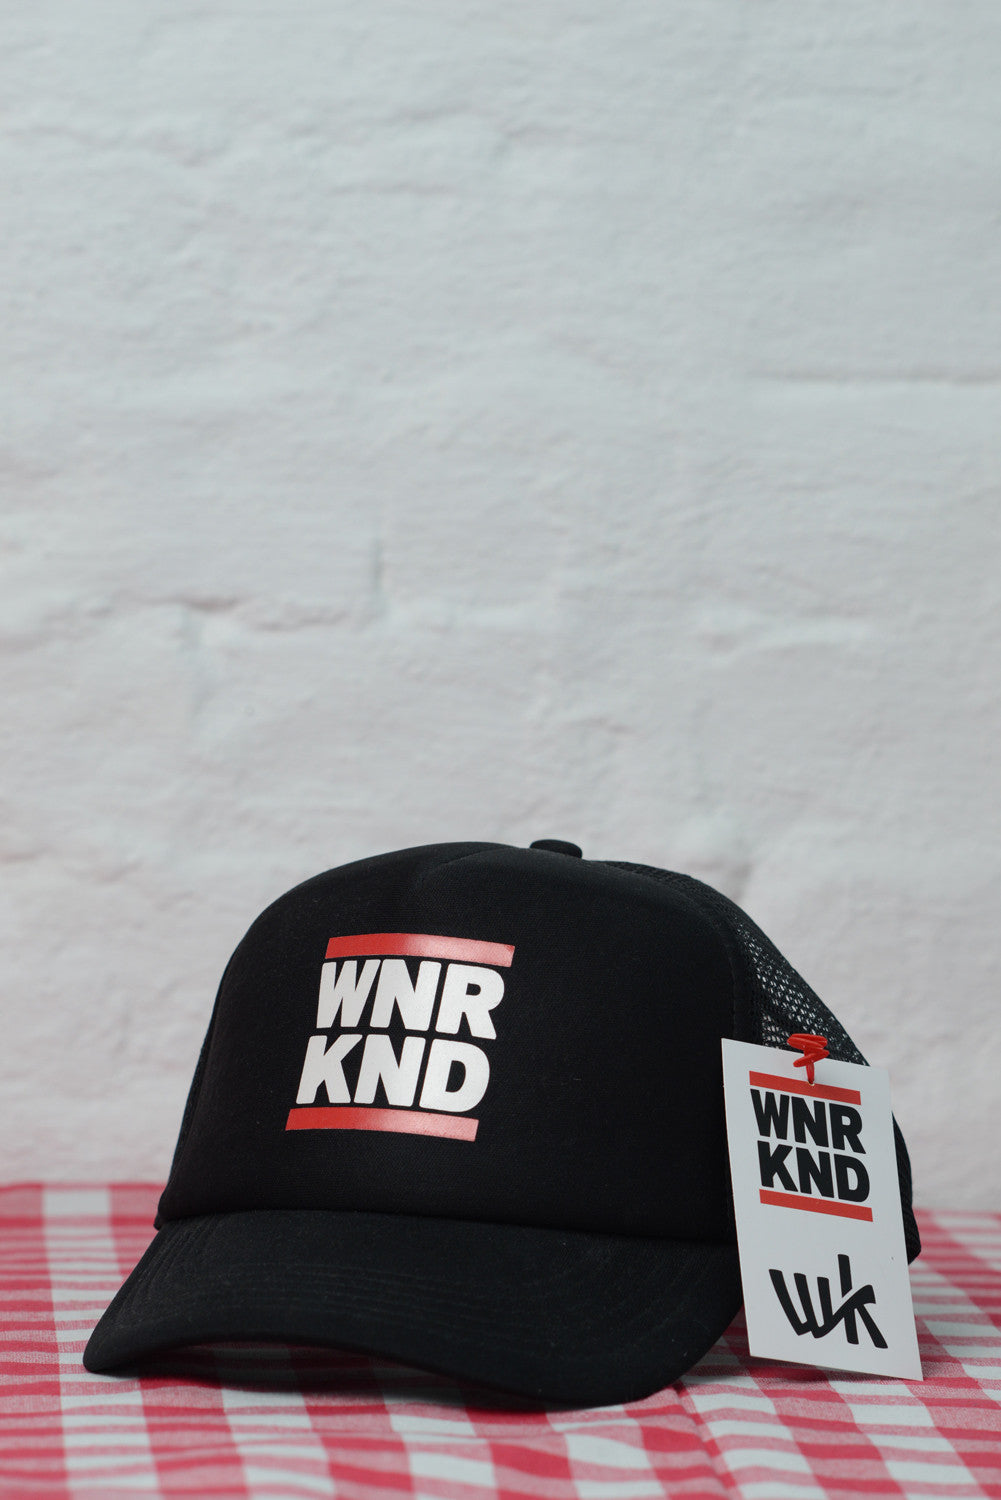 WNRKND Trucker Cap Kids black